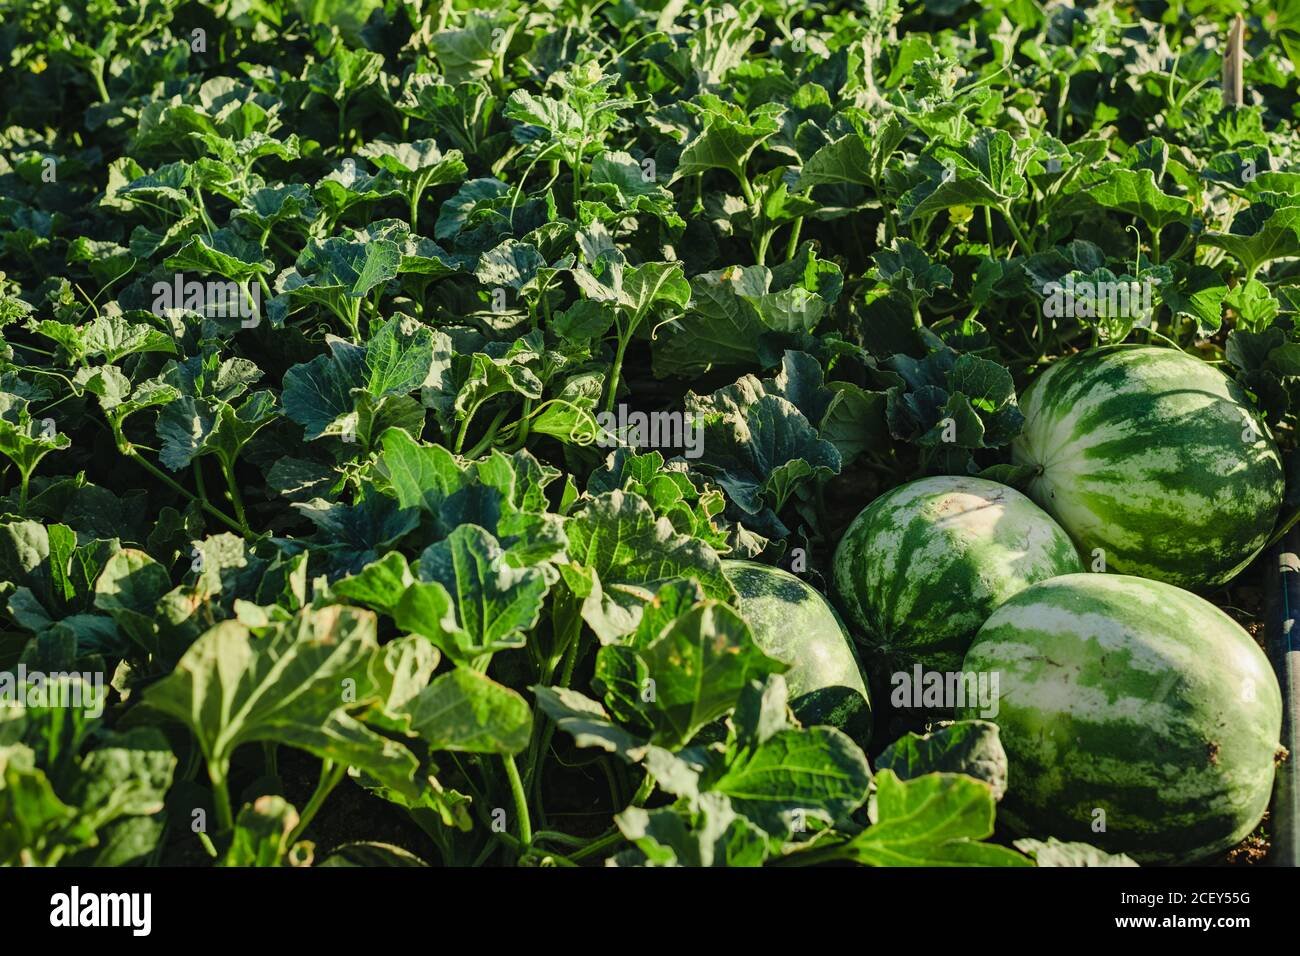 Watermelon Field High Resolution Stock Photography And Images Alamy